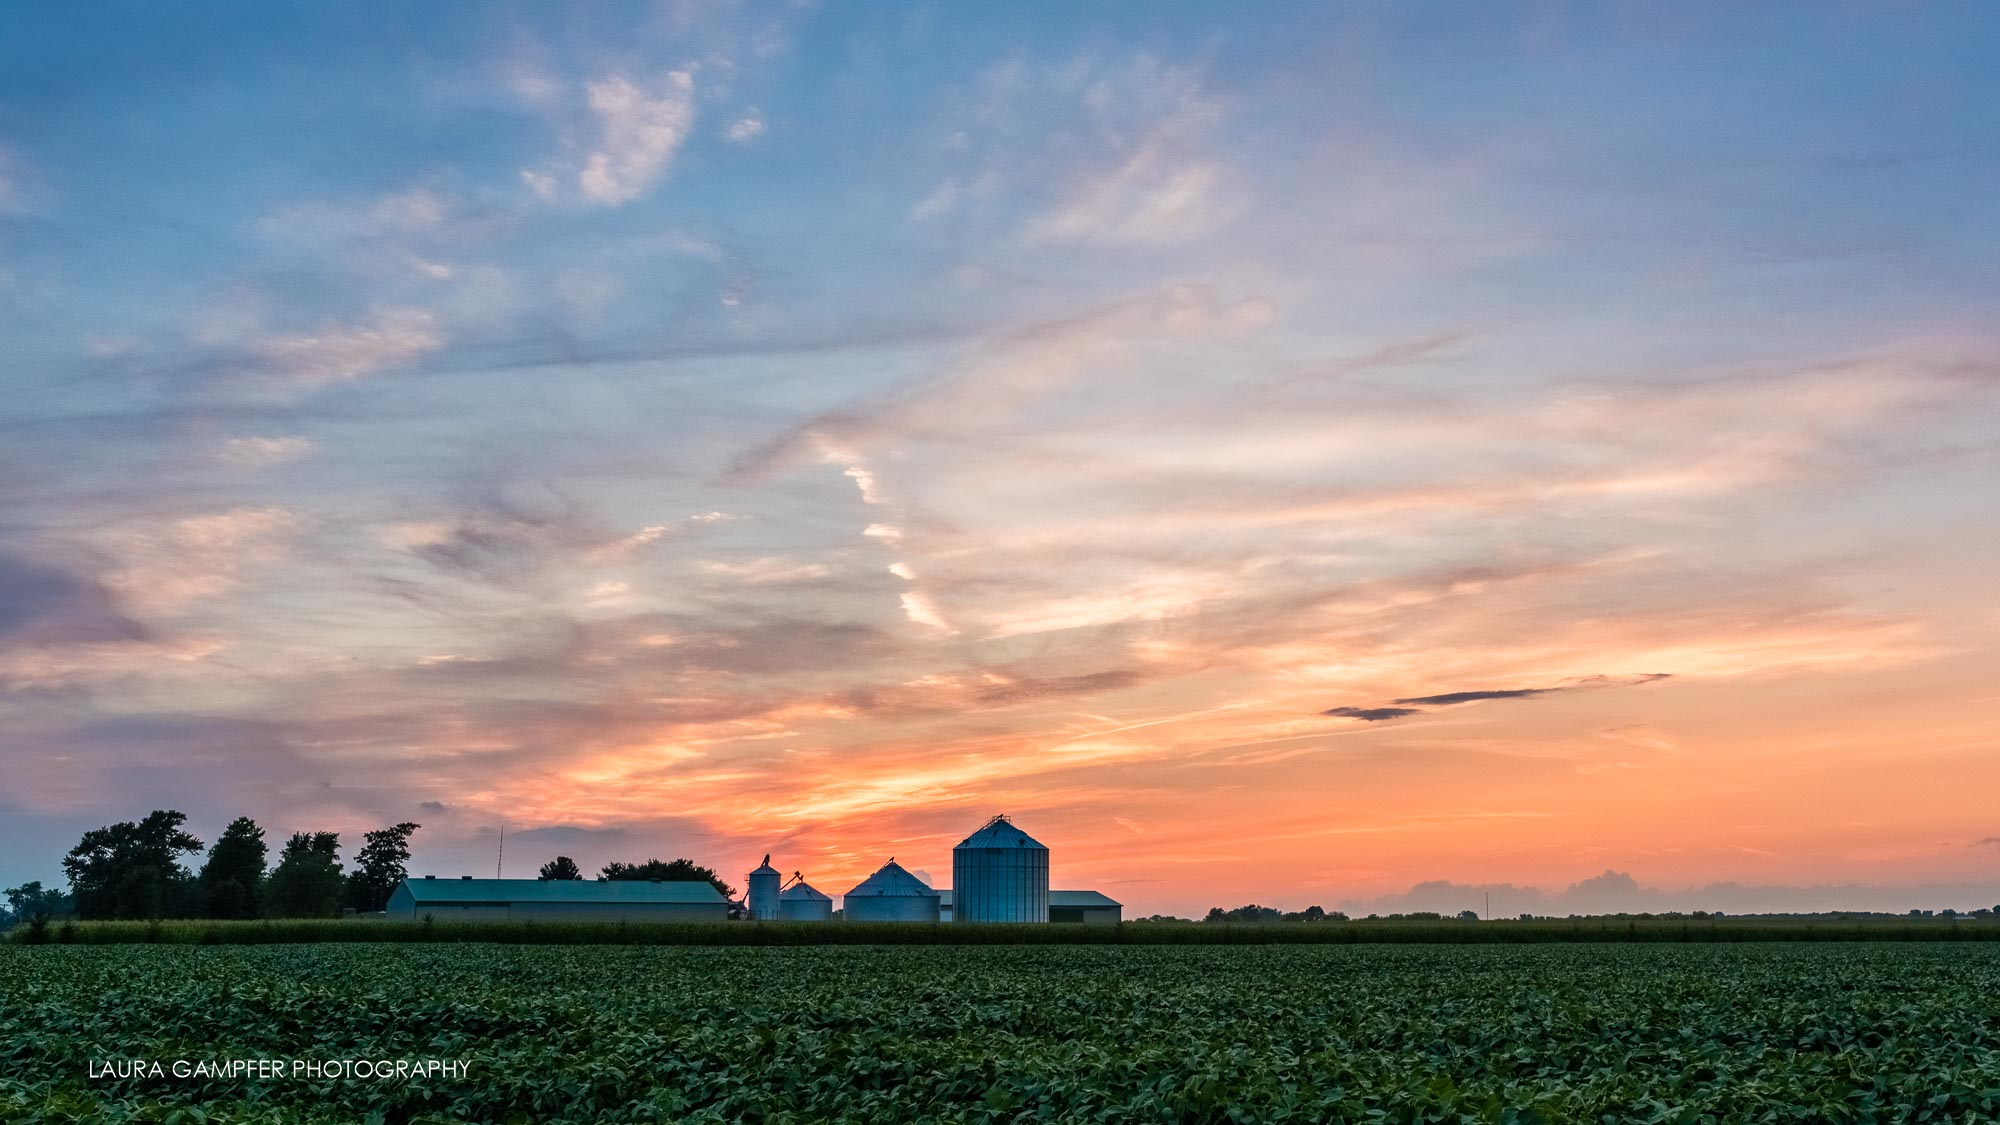 kane-county-sunset-farm-rural-il